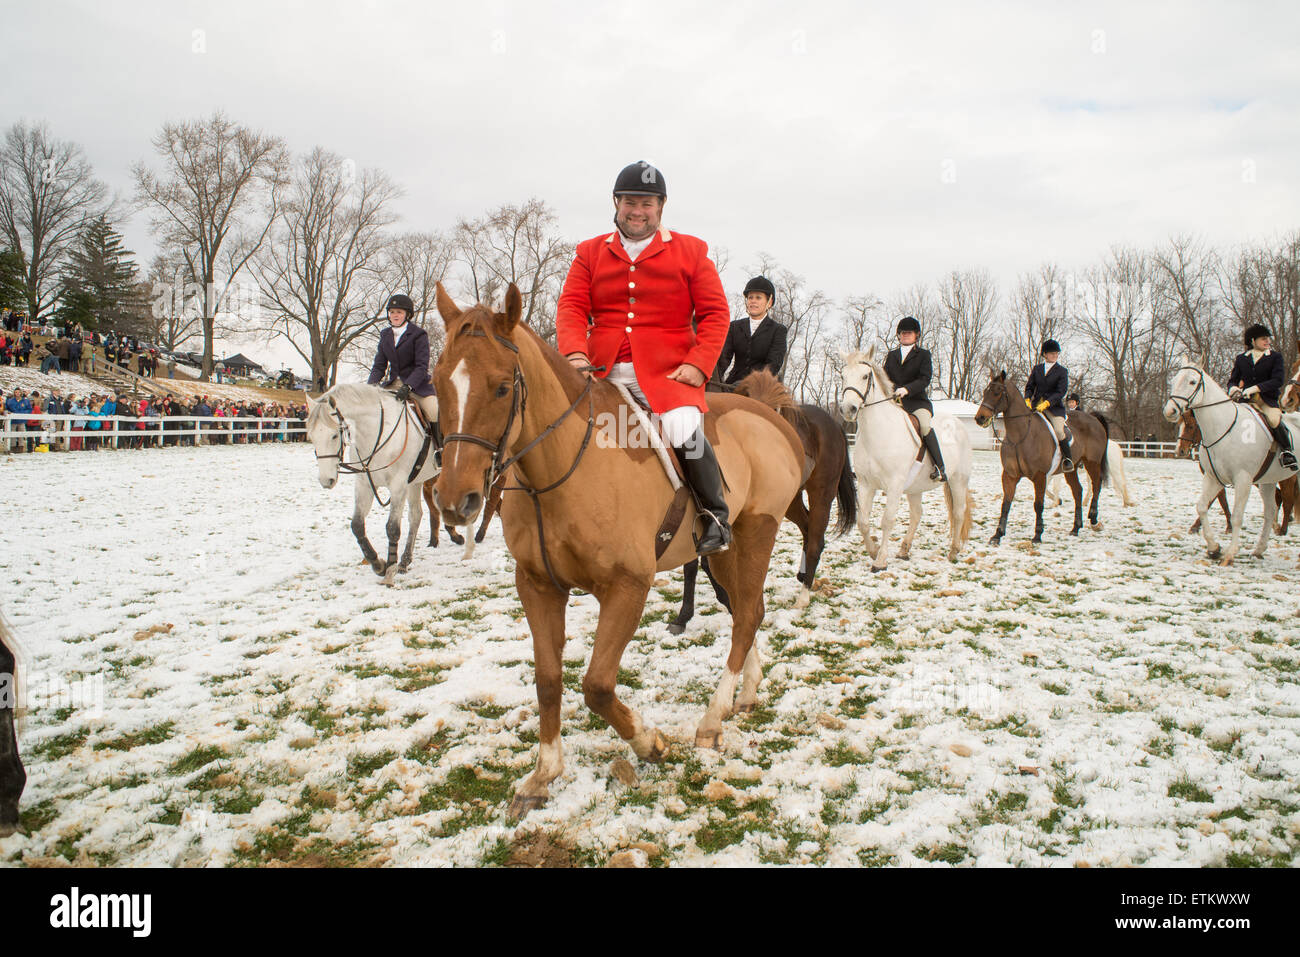 Fox hunters on horses at the Blessing of the hounds at St. James Church in Monkton, MD, USA - Stock Image